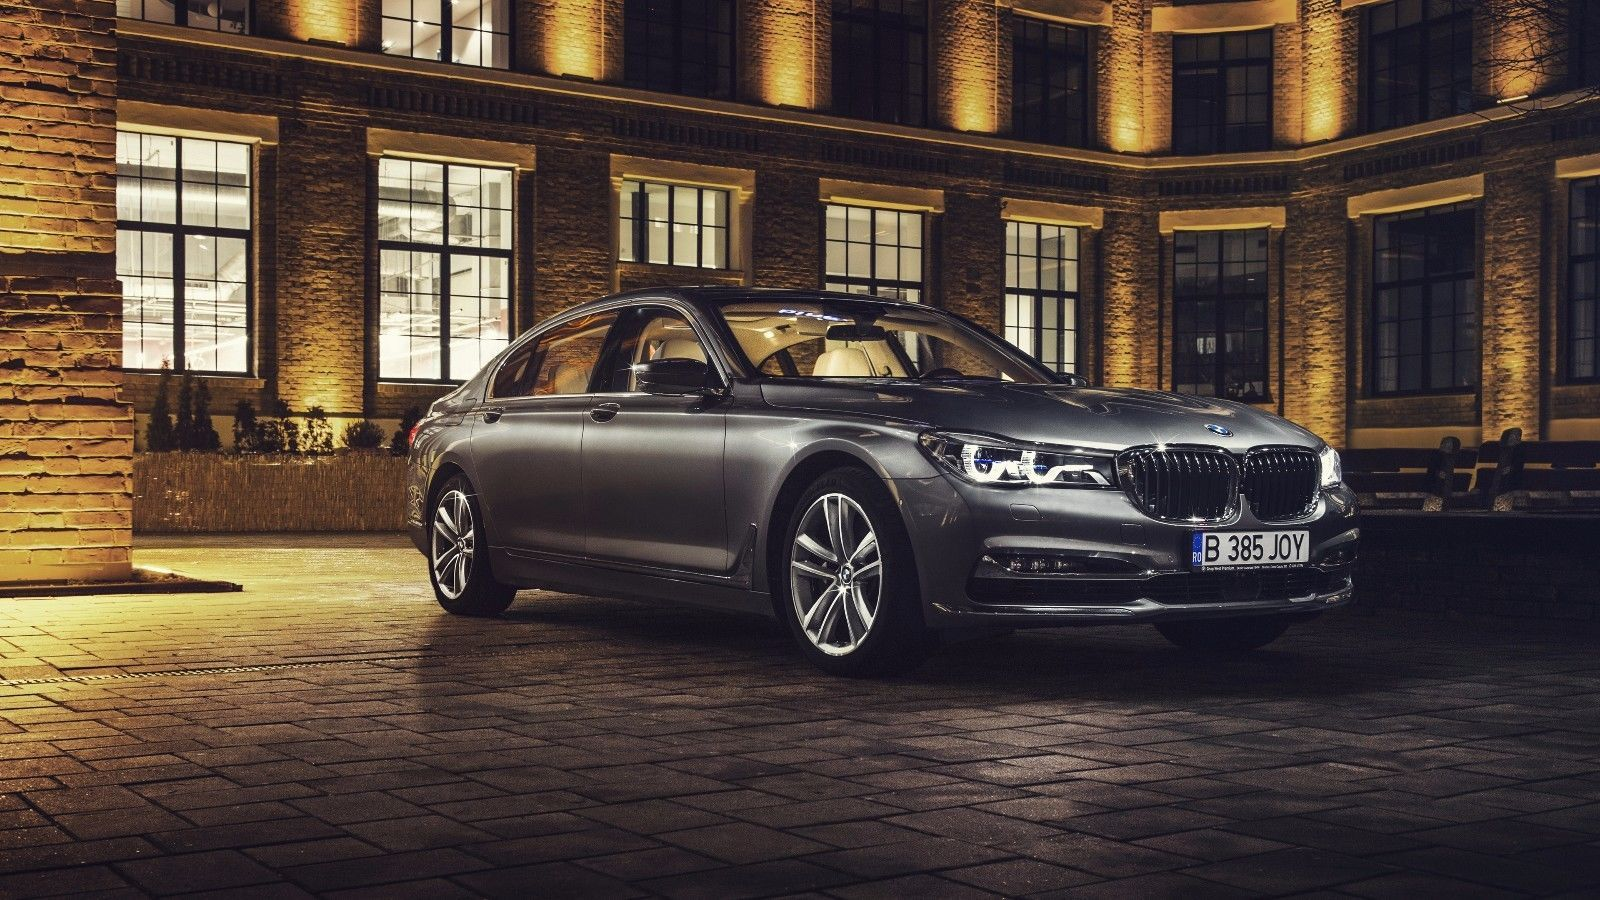 Primary image for 2017 BMW 7 Series 24X36 inch poster, sports car